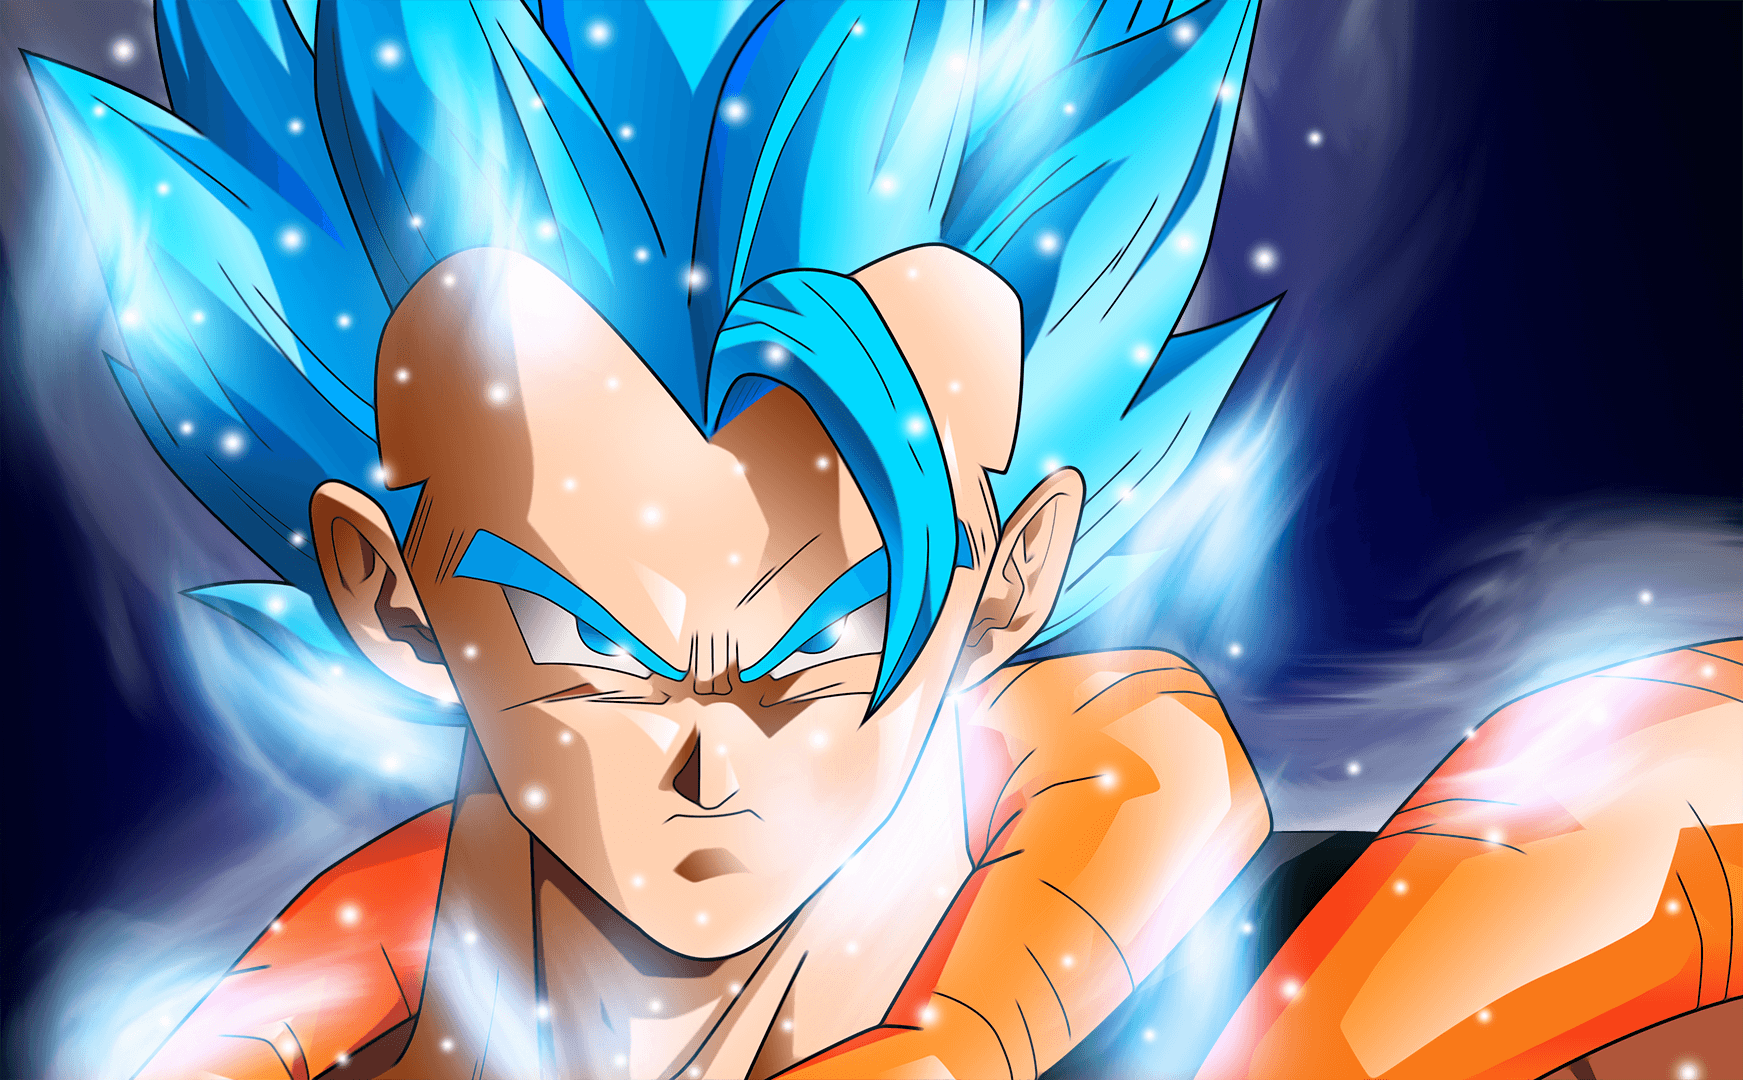 Gogeta Blue Wallpaper 4k Hd Wallpaper For Desktop Background